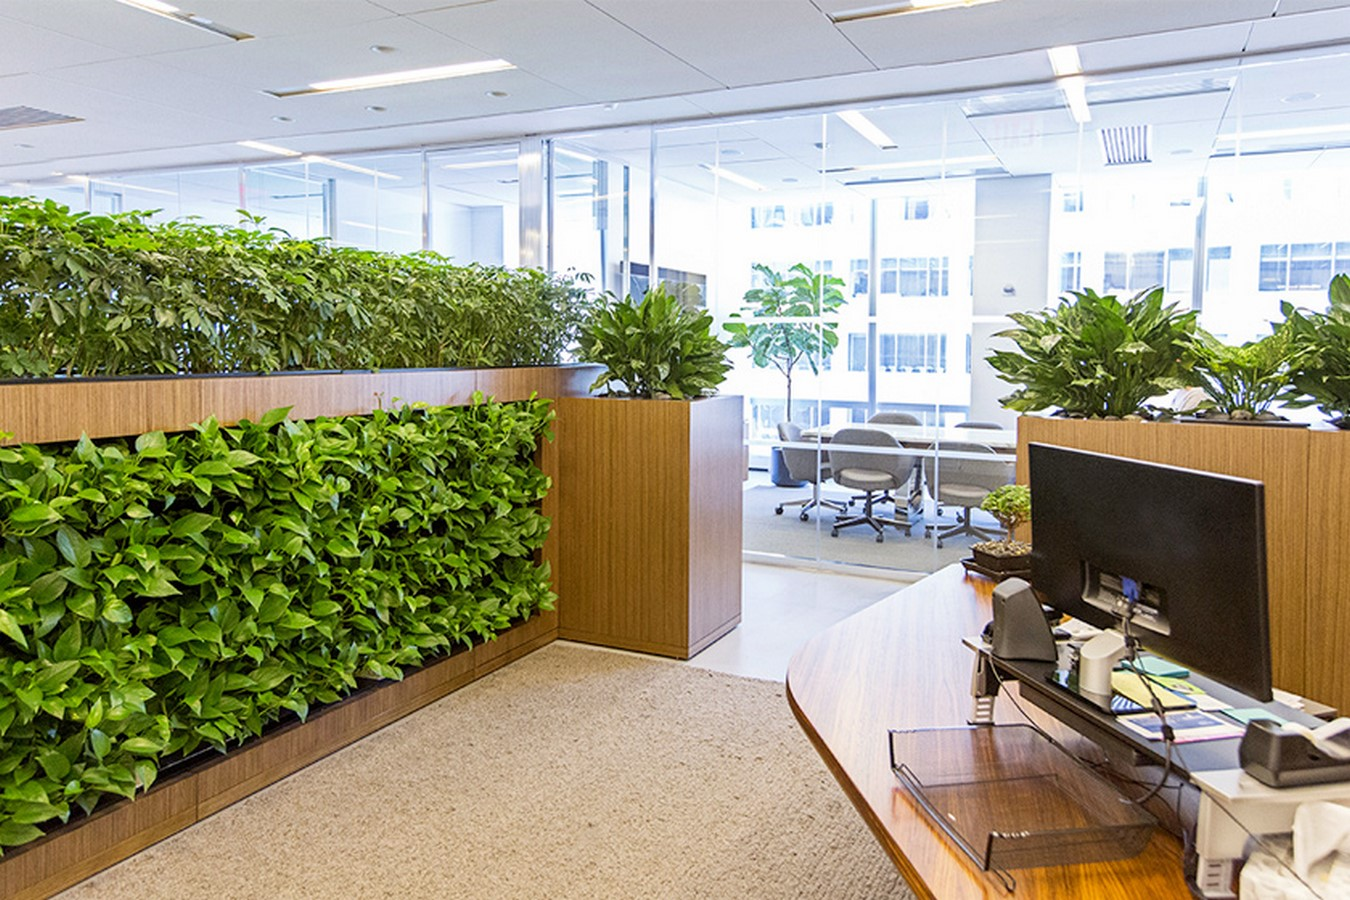 10 things you did not know about Green walls - Sheet3